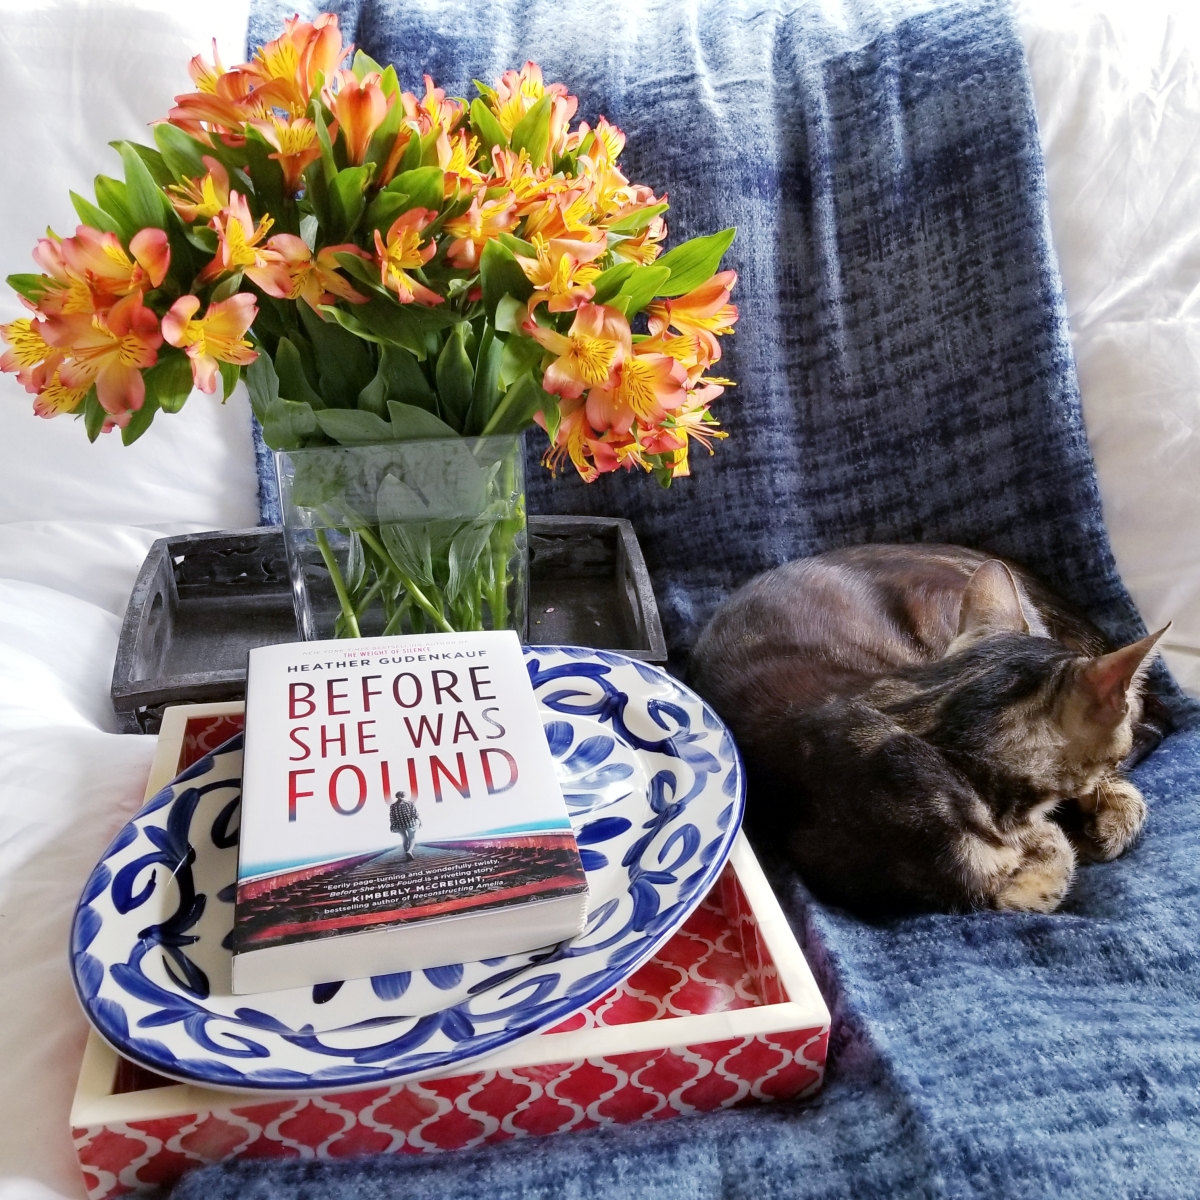 Before She Was Found by Heather Gudenkauf #bookreview #tarheelreader #thrbeforeshewas @hgudenkauf @harlequinbooks @parkrowbooks @tlcbooktours #beforeshewasfound #blogtour